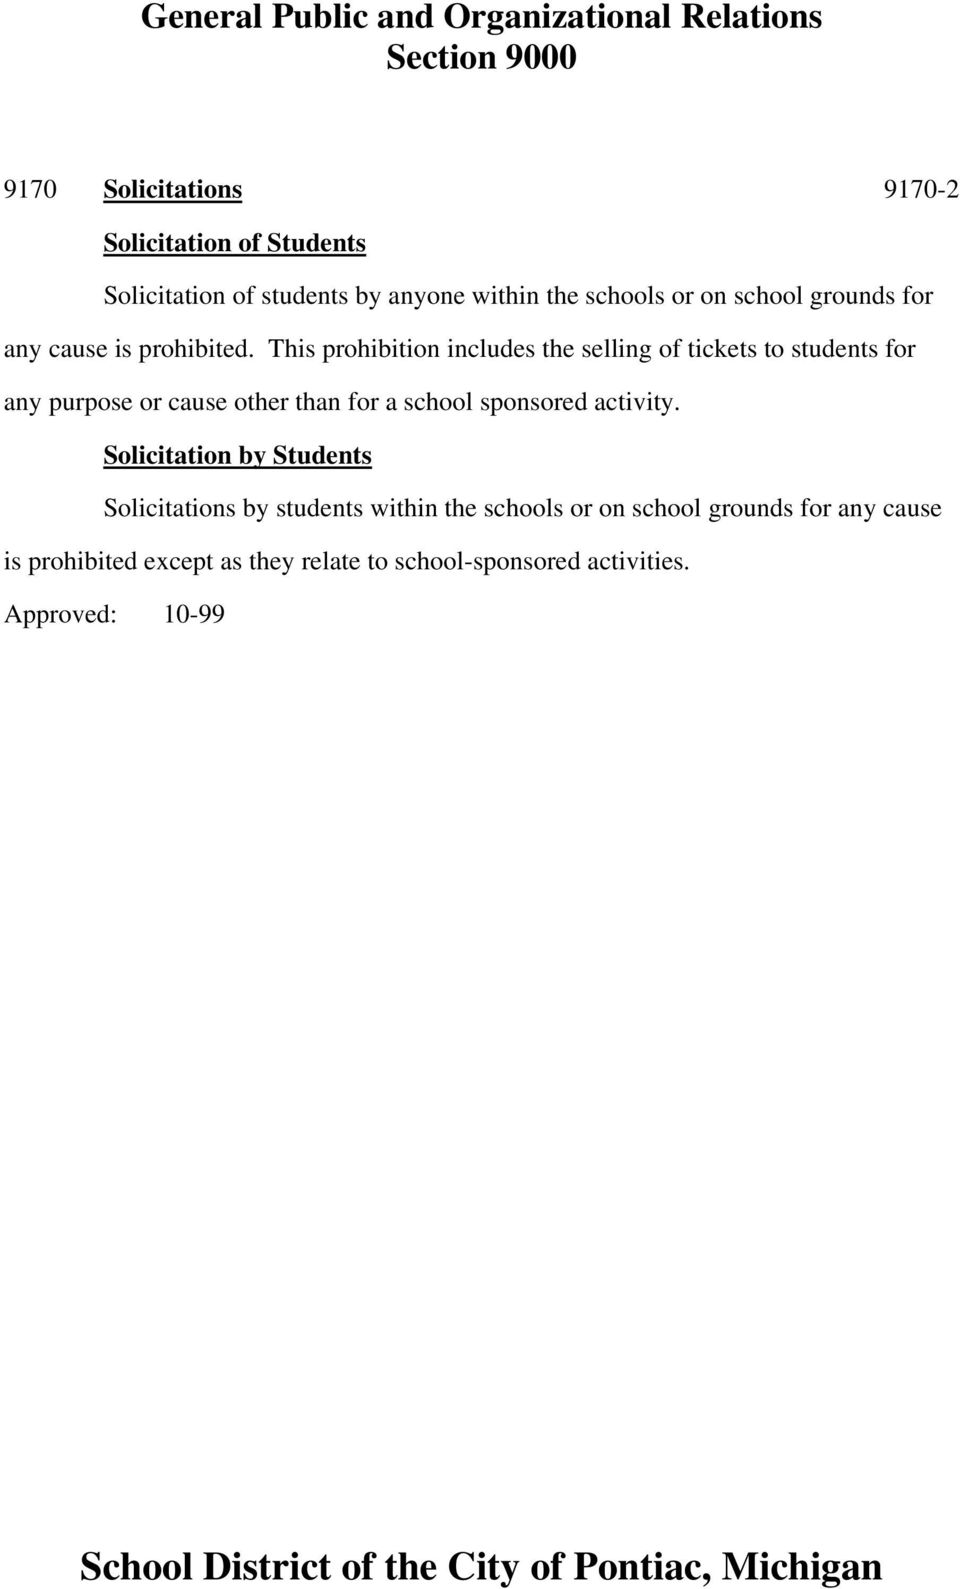 This prohibition includes the selling of tickets to students for any purpose or cause other than for a school